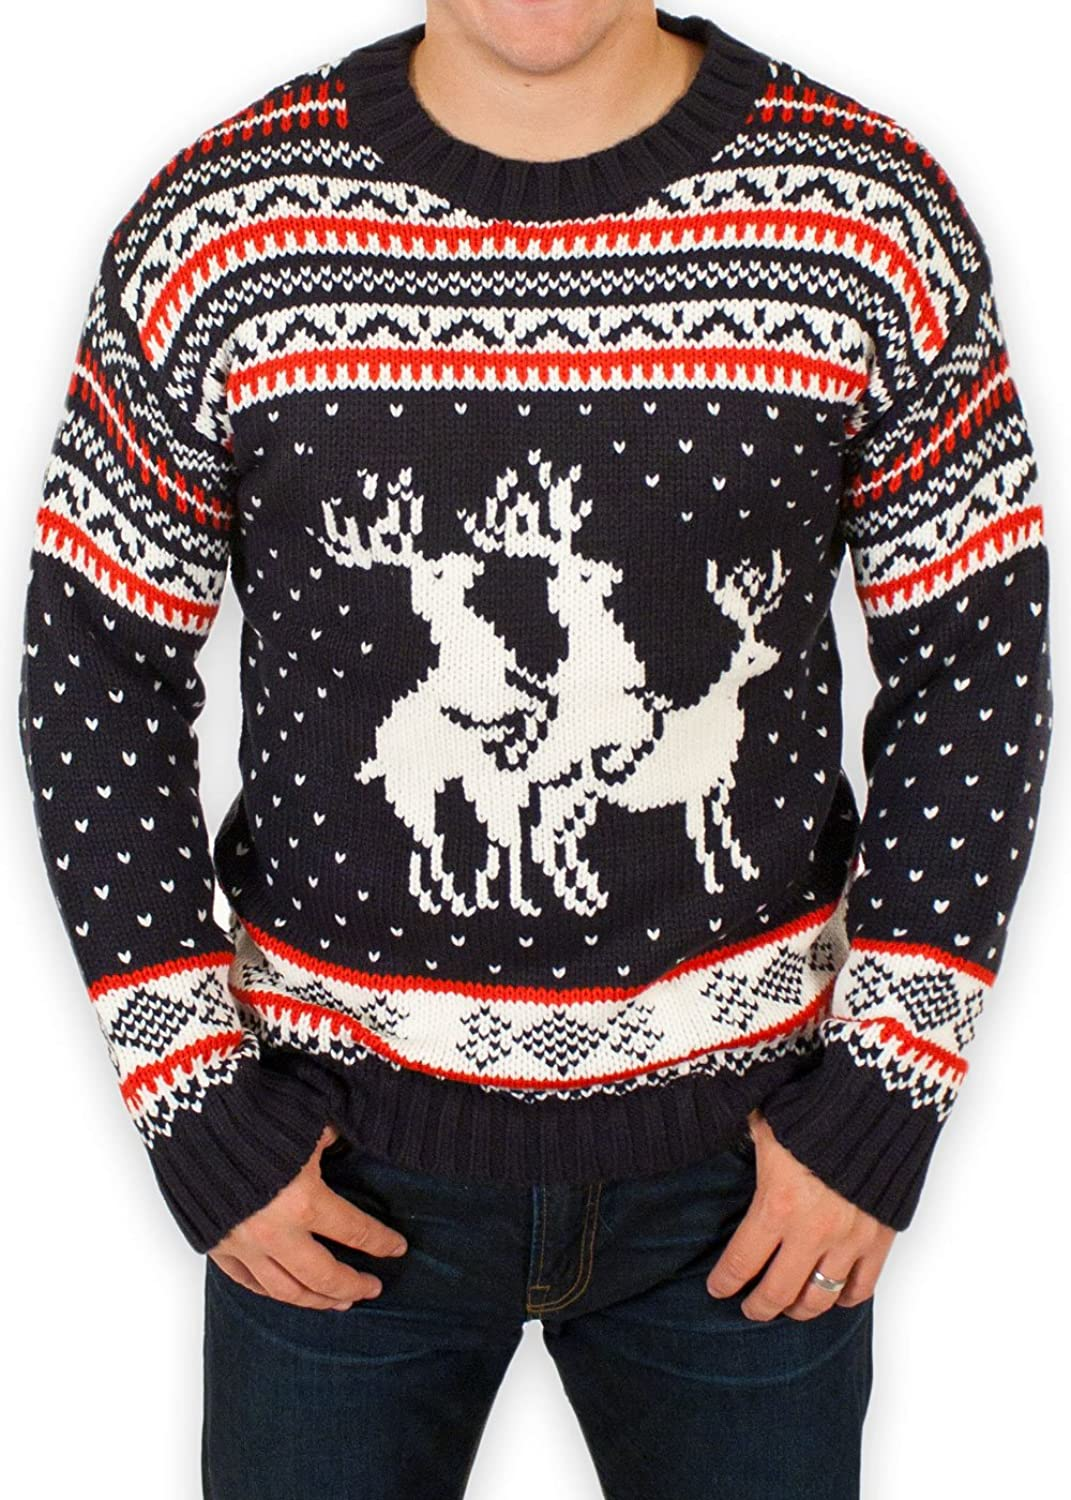 Ugly Christmas Sweater - Reindeer Threesome Sweater By Festified at ...